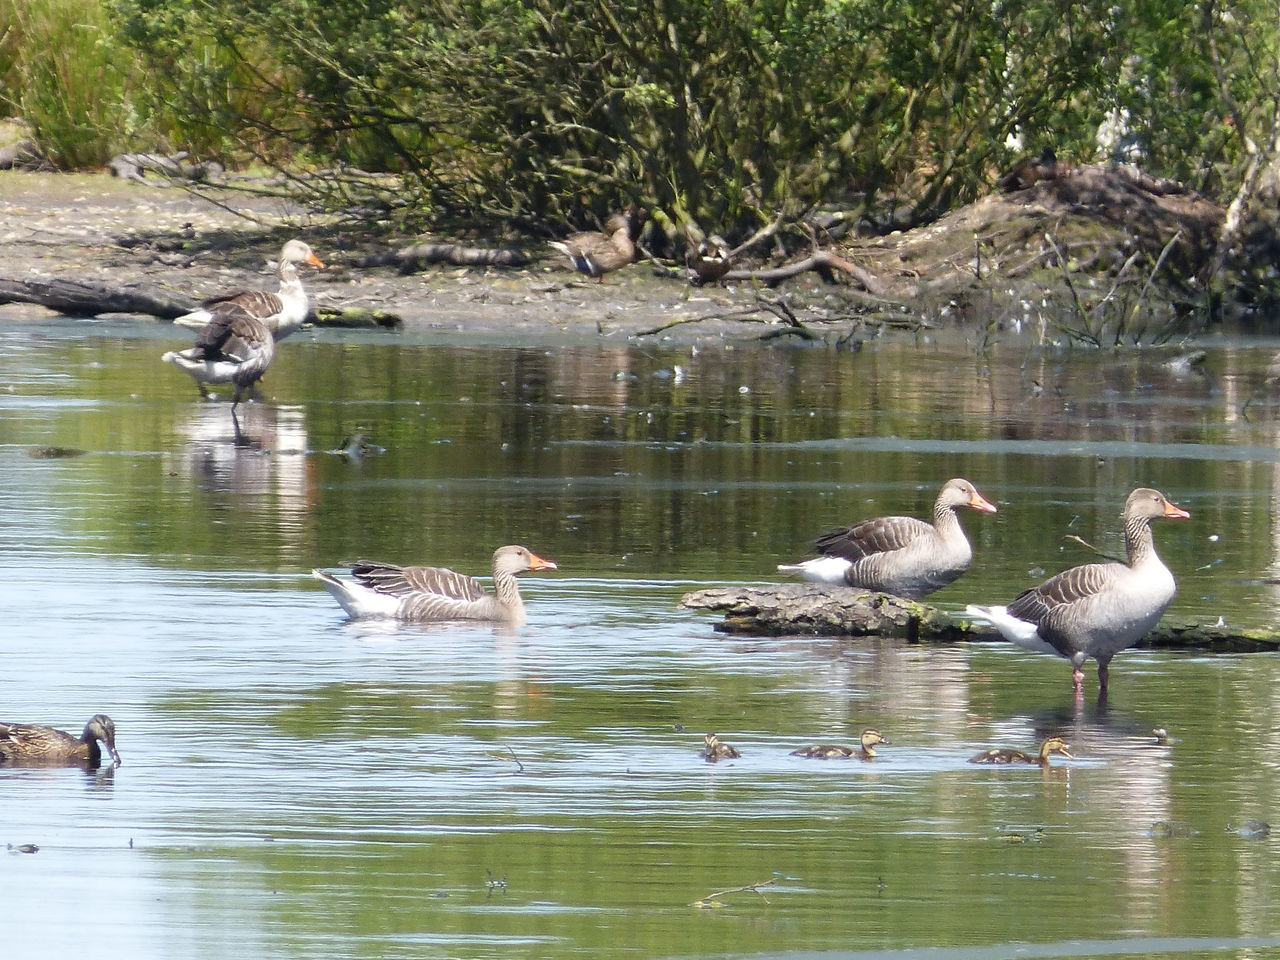 animals in the wild, animal themes, bird, water, lake, animal wildlife, reflection, waterfront, nature, swimming, young bird, day, goose, water bird, no people, outdoors, beauty in nature